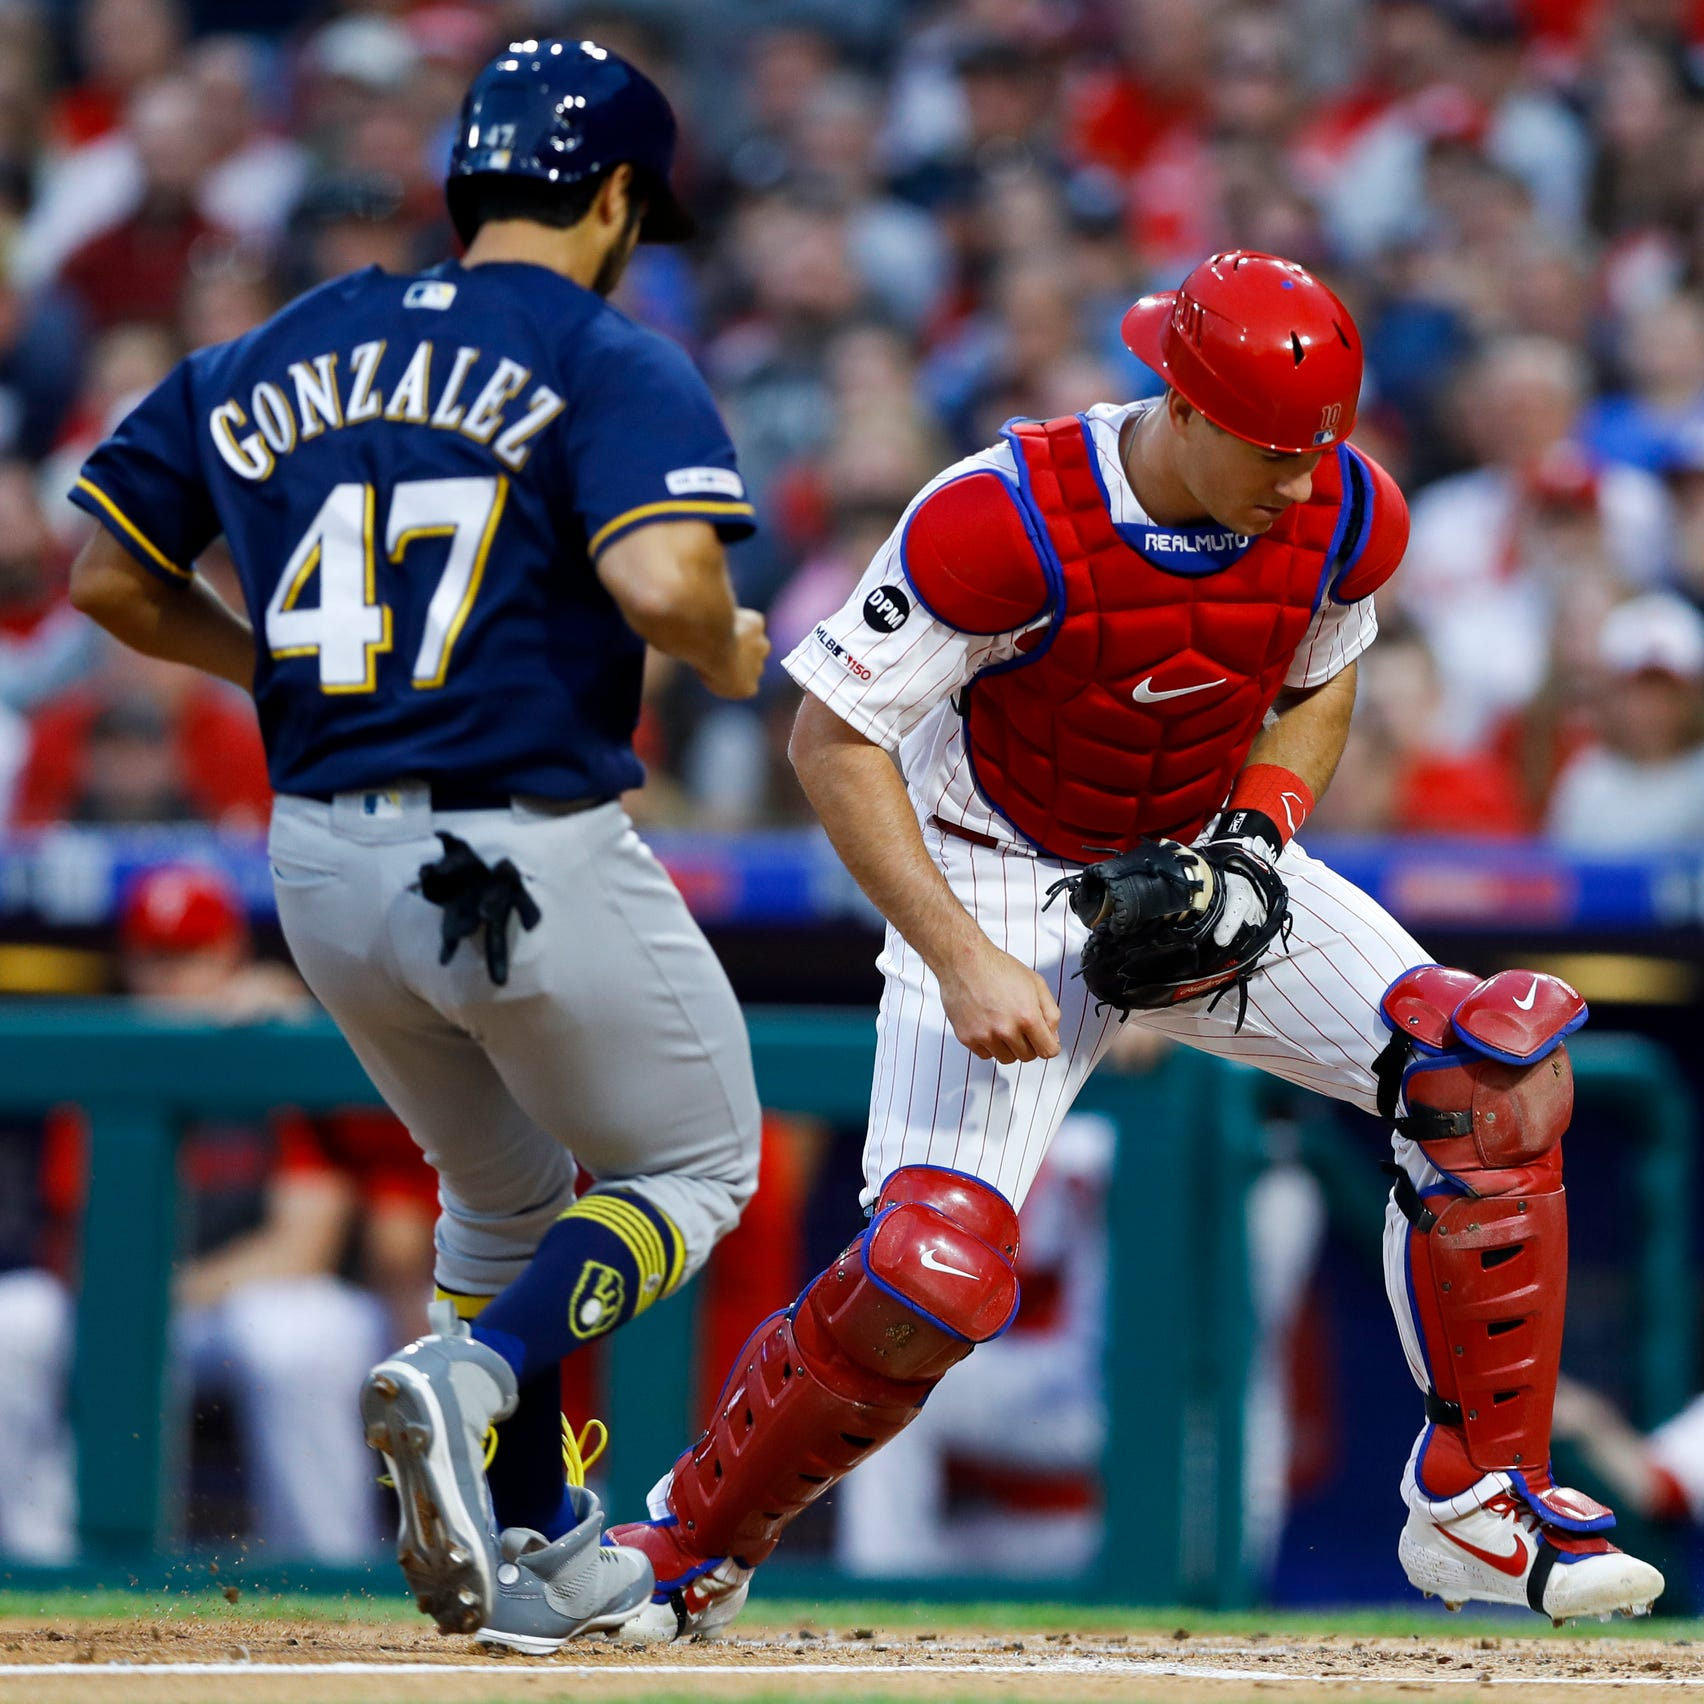 Things are going so well for Gio Gonzalez, even his base-running mistake worked for Brewers